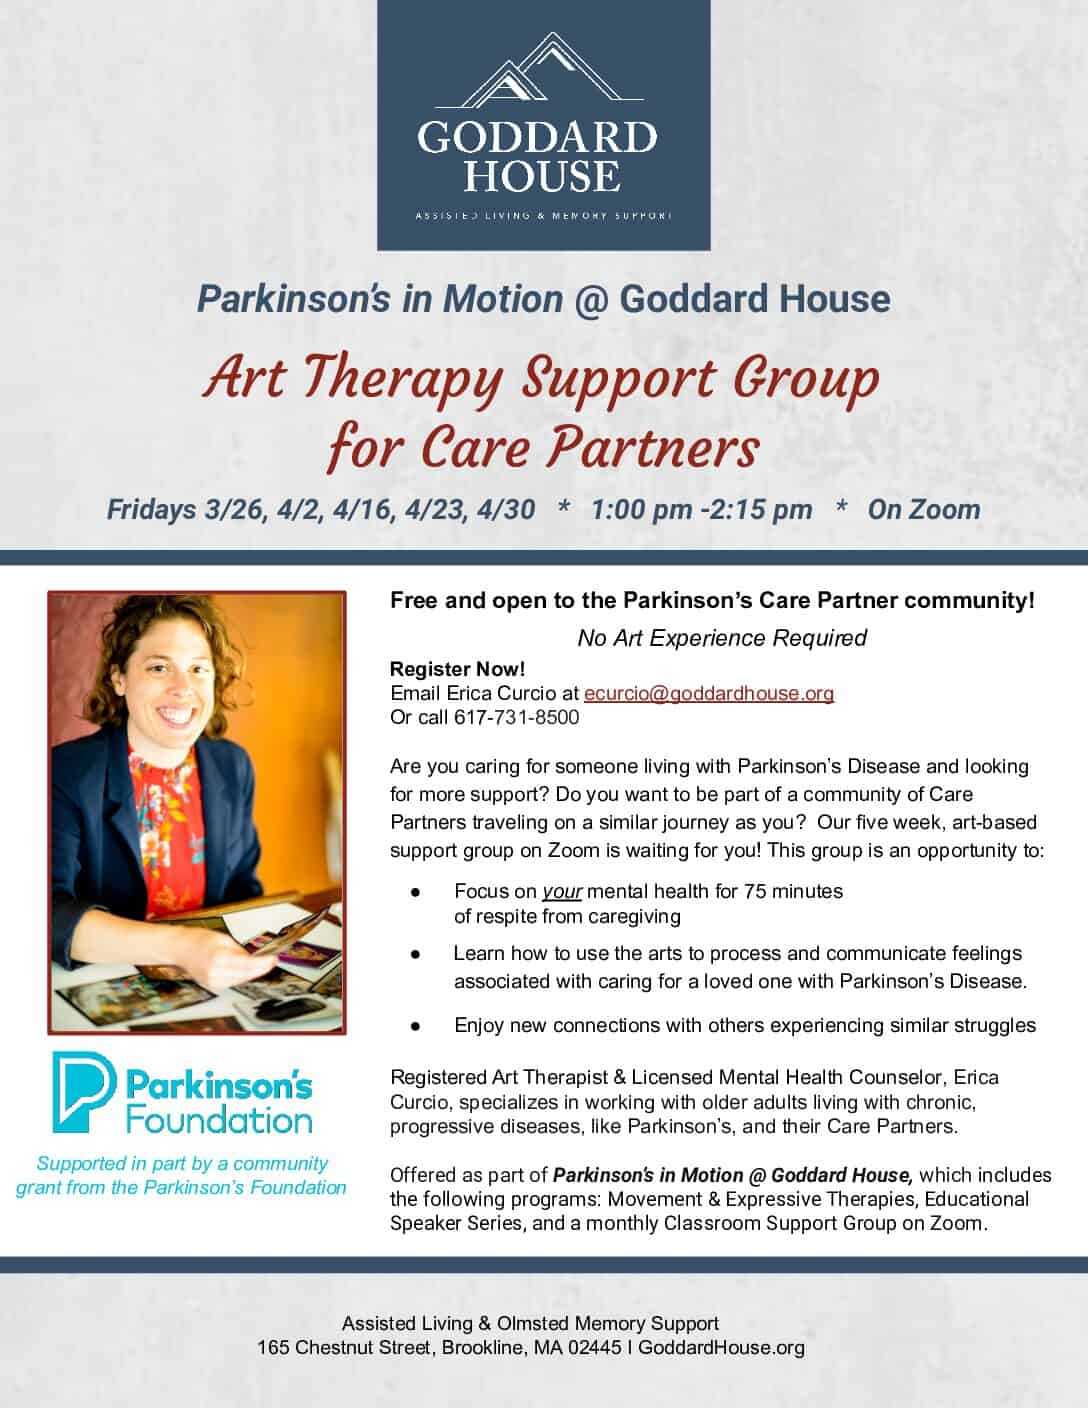 Art Therapy Support Group for Care Partners